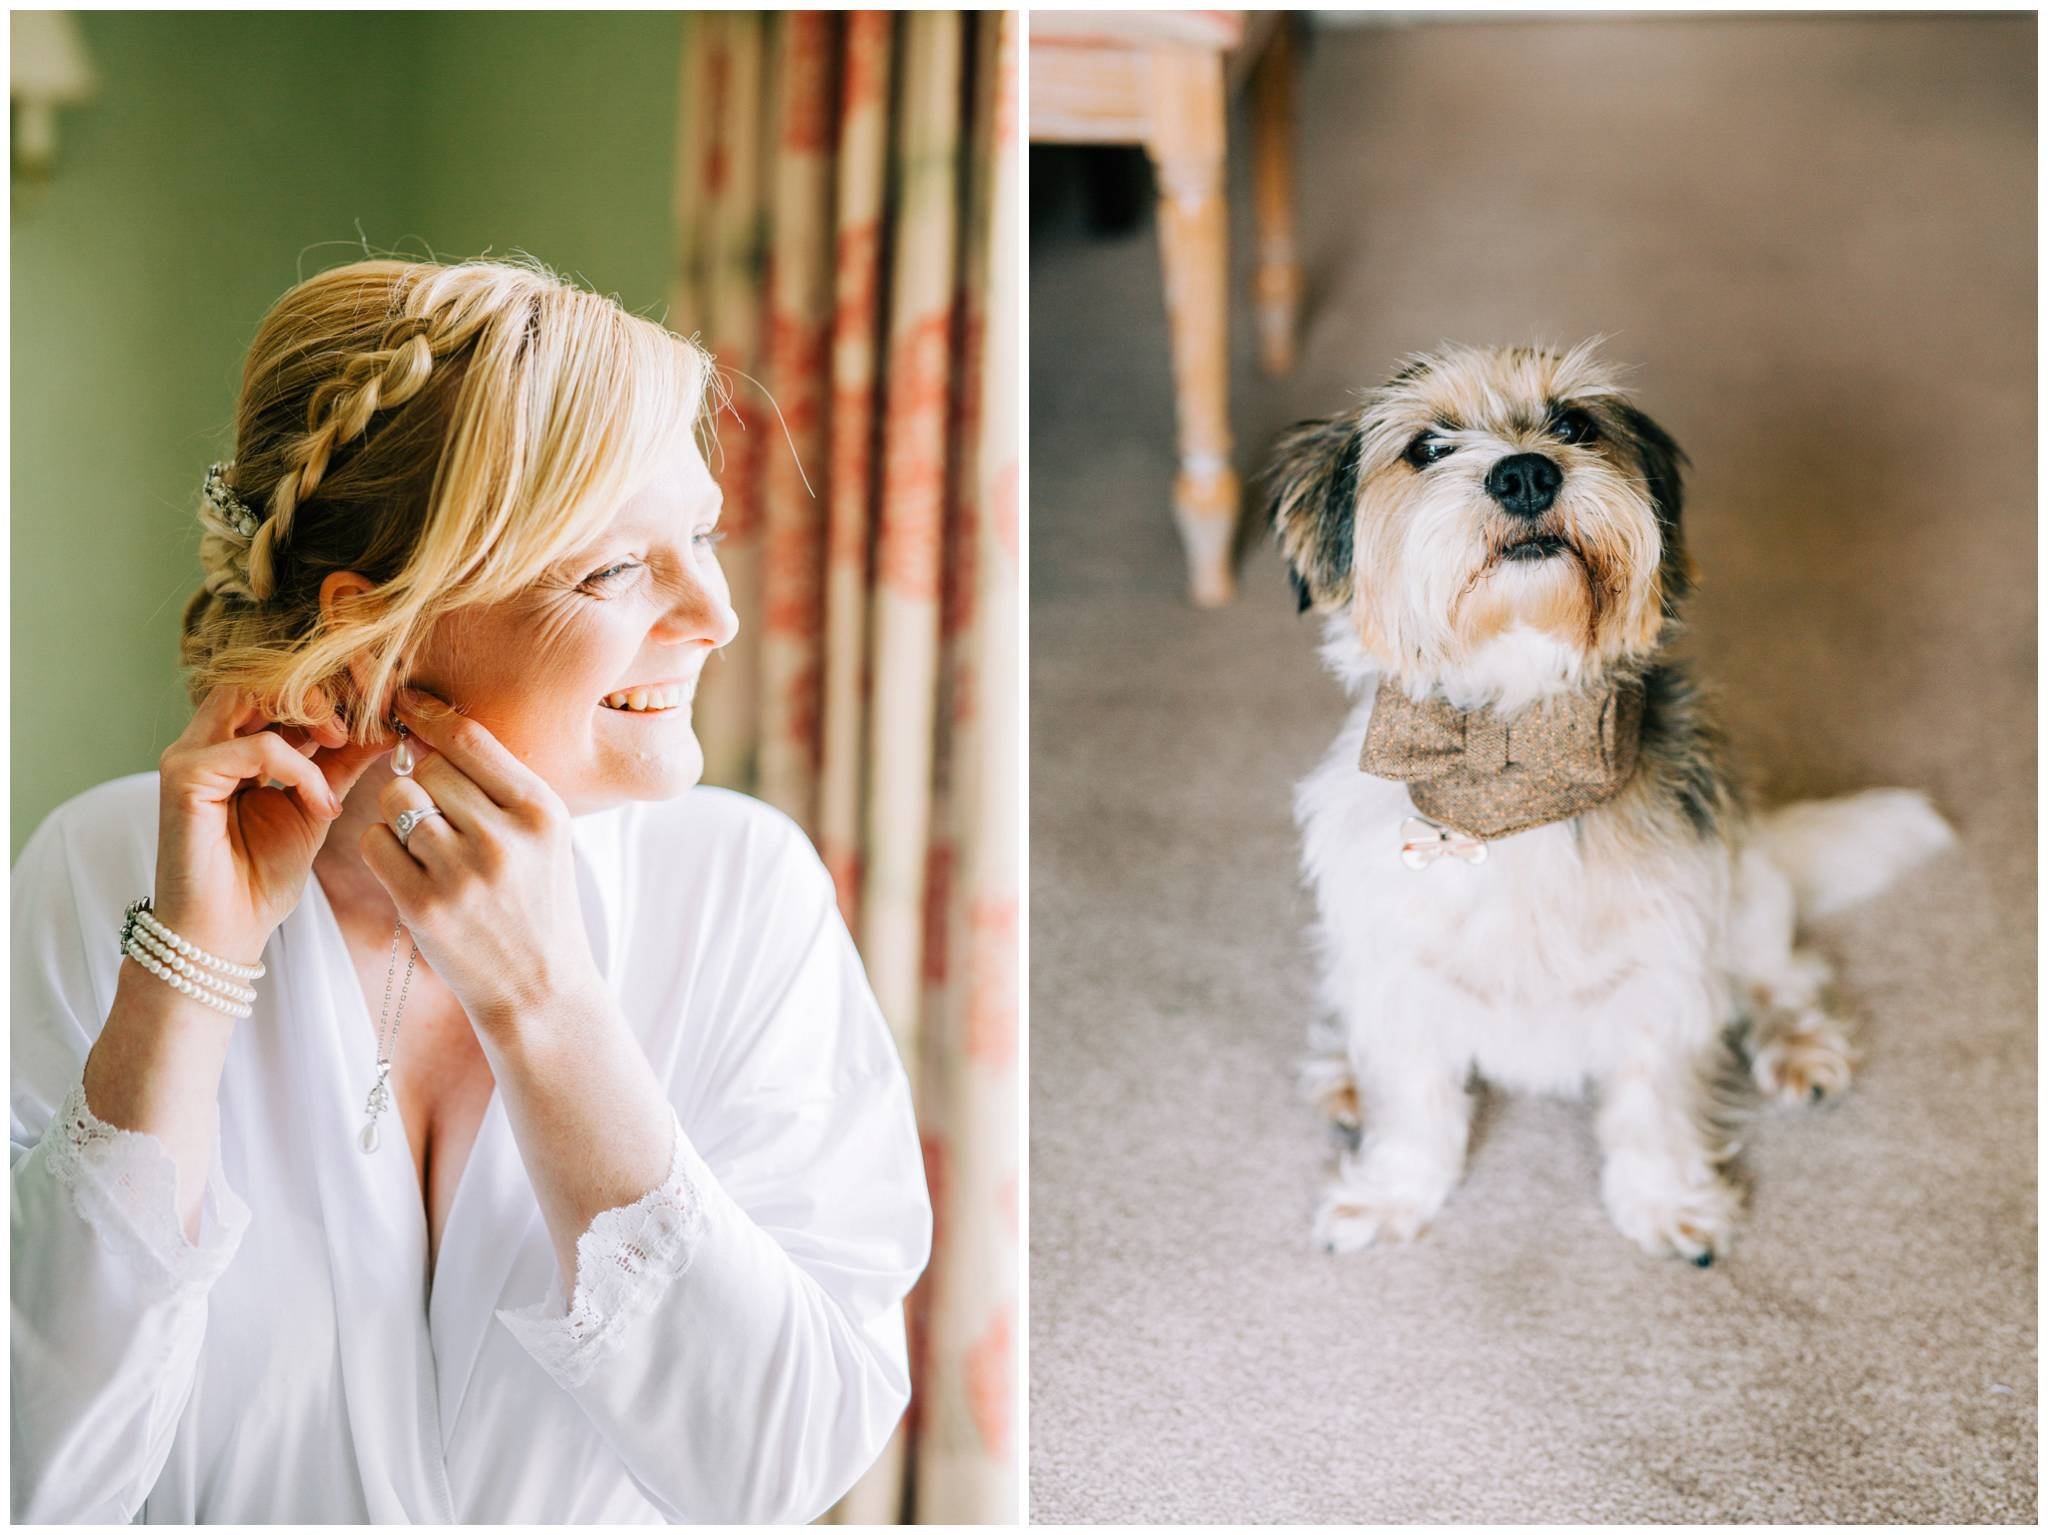 Natural wedding photography Manchester - Clare Robinson Photography_0162.jpg